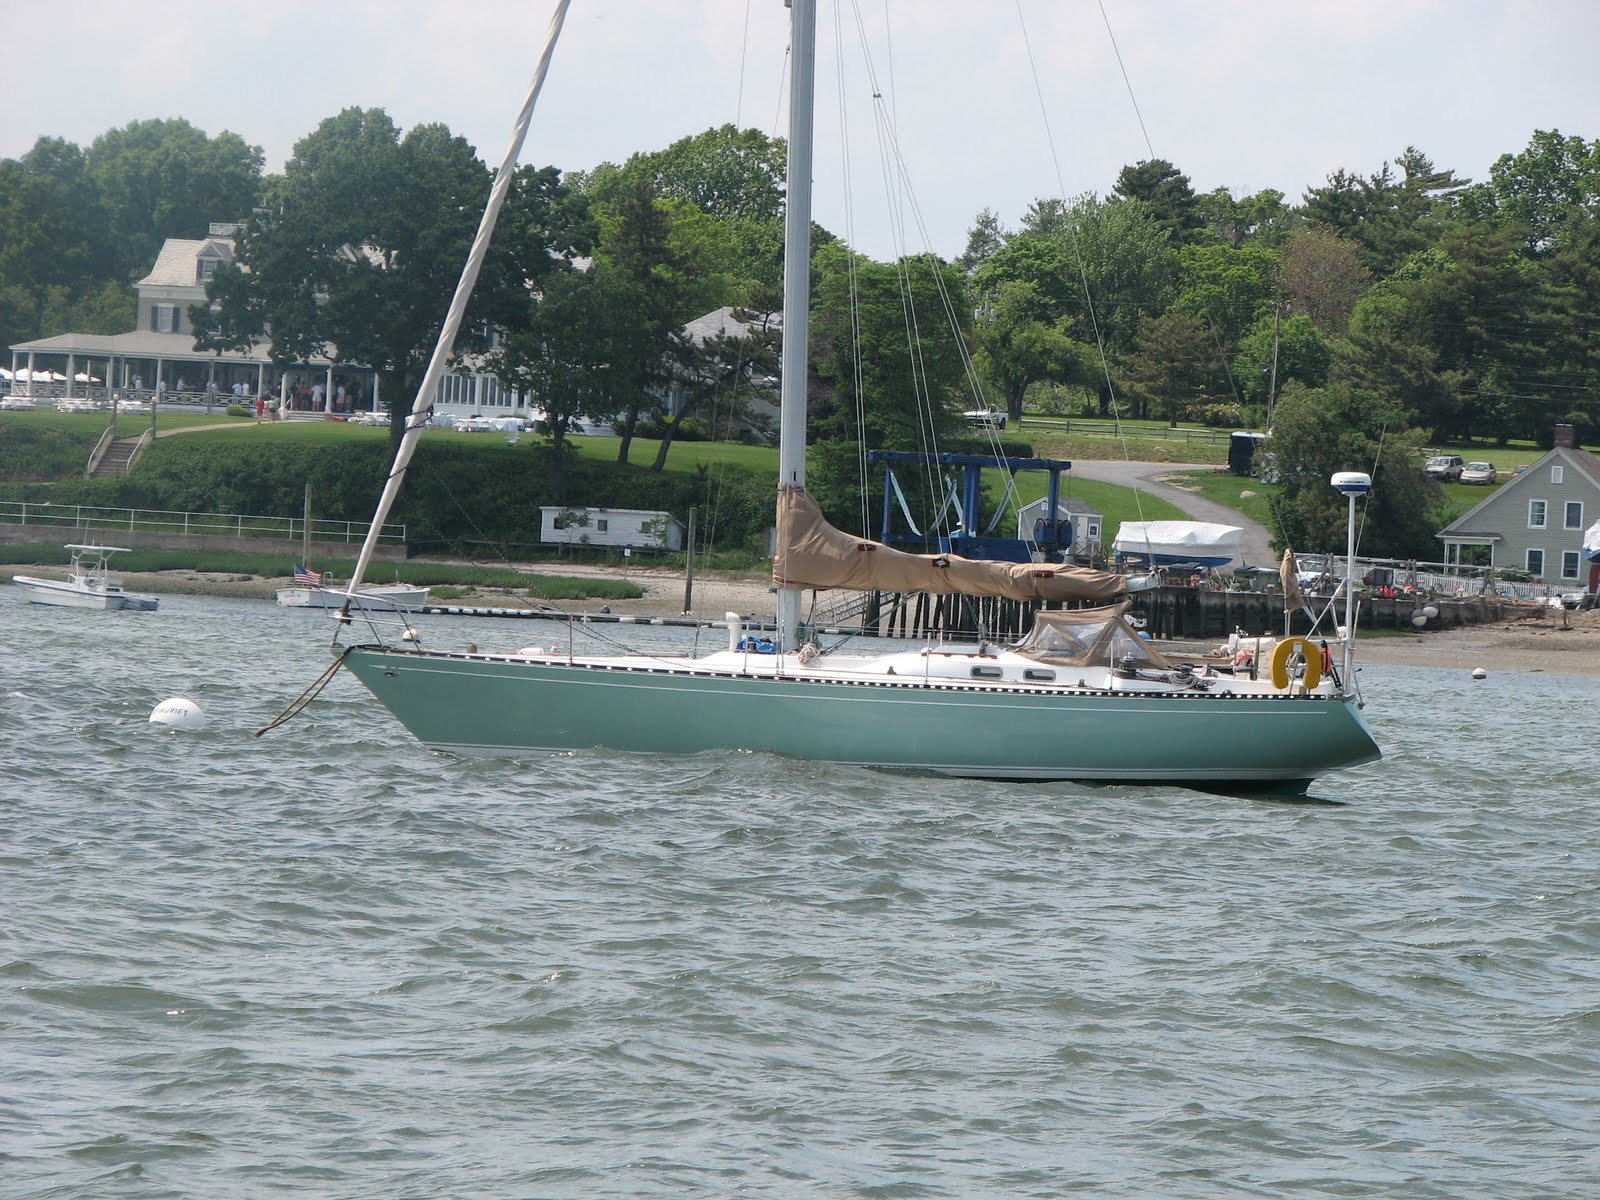 I took this shot of this nice looking Tartan 41 while sailing in Oyster Bay.